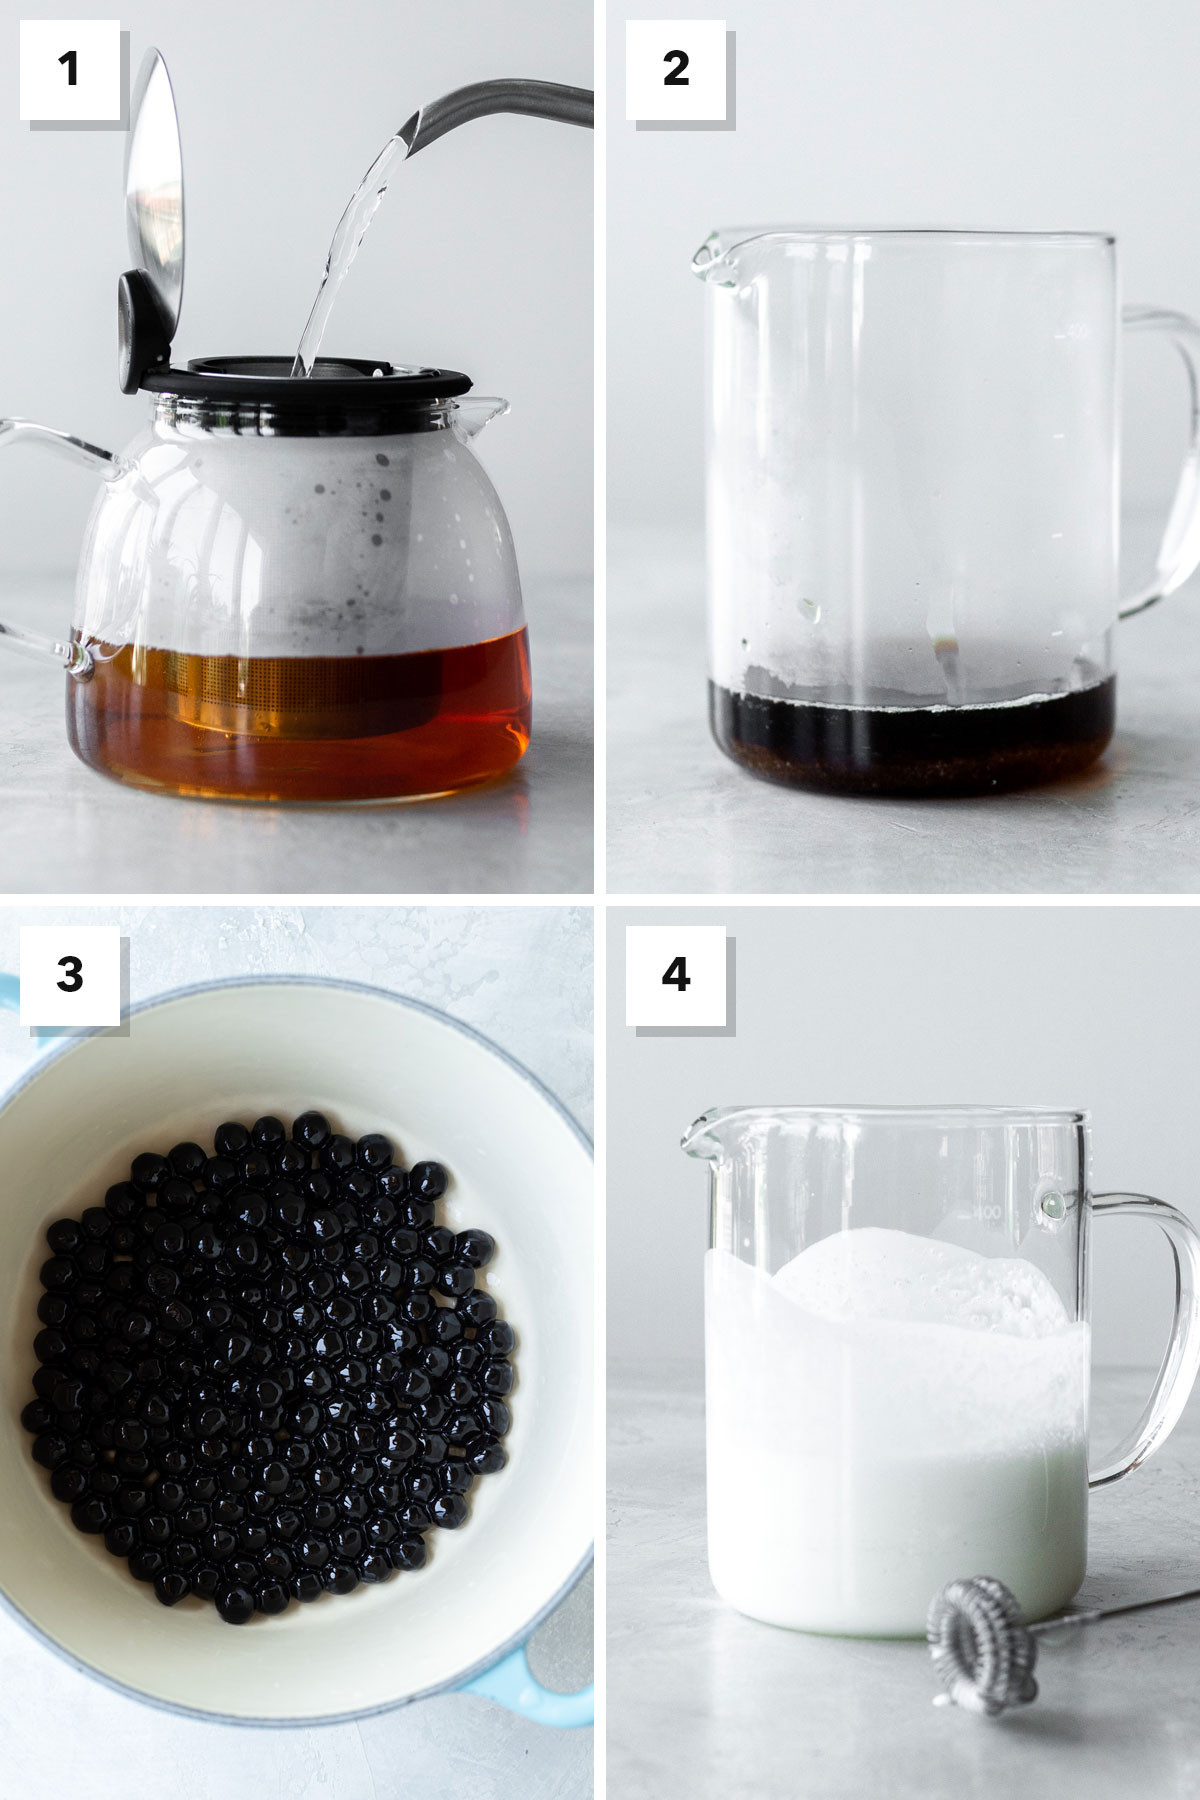 Four photo collage showing steps to make bubble tea.